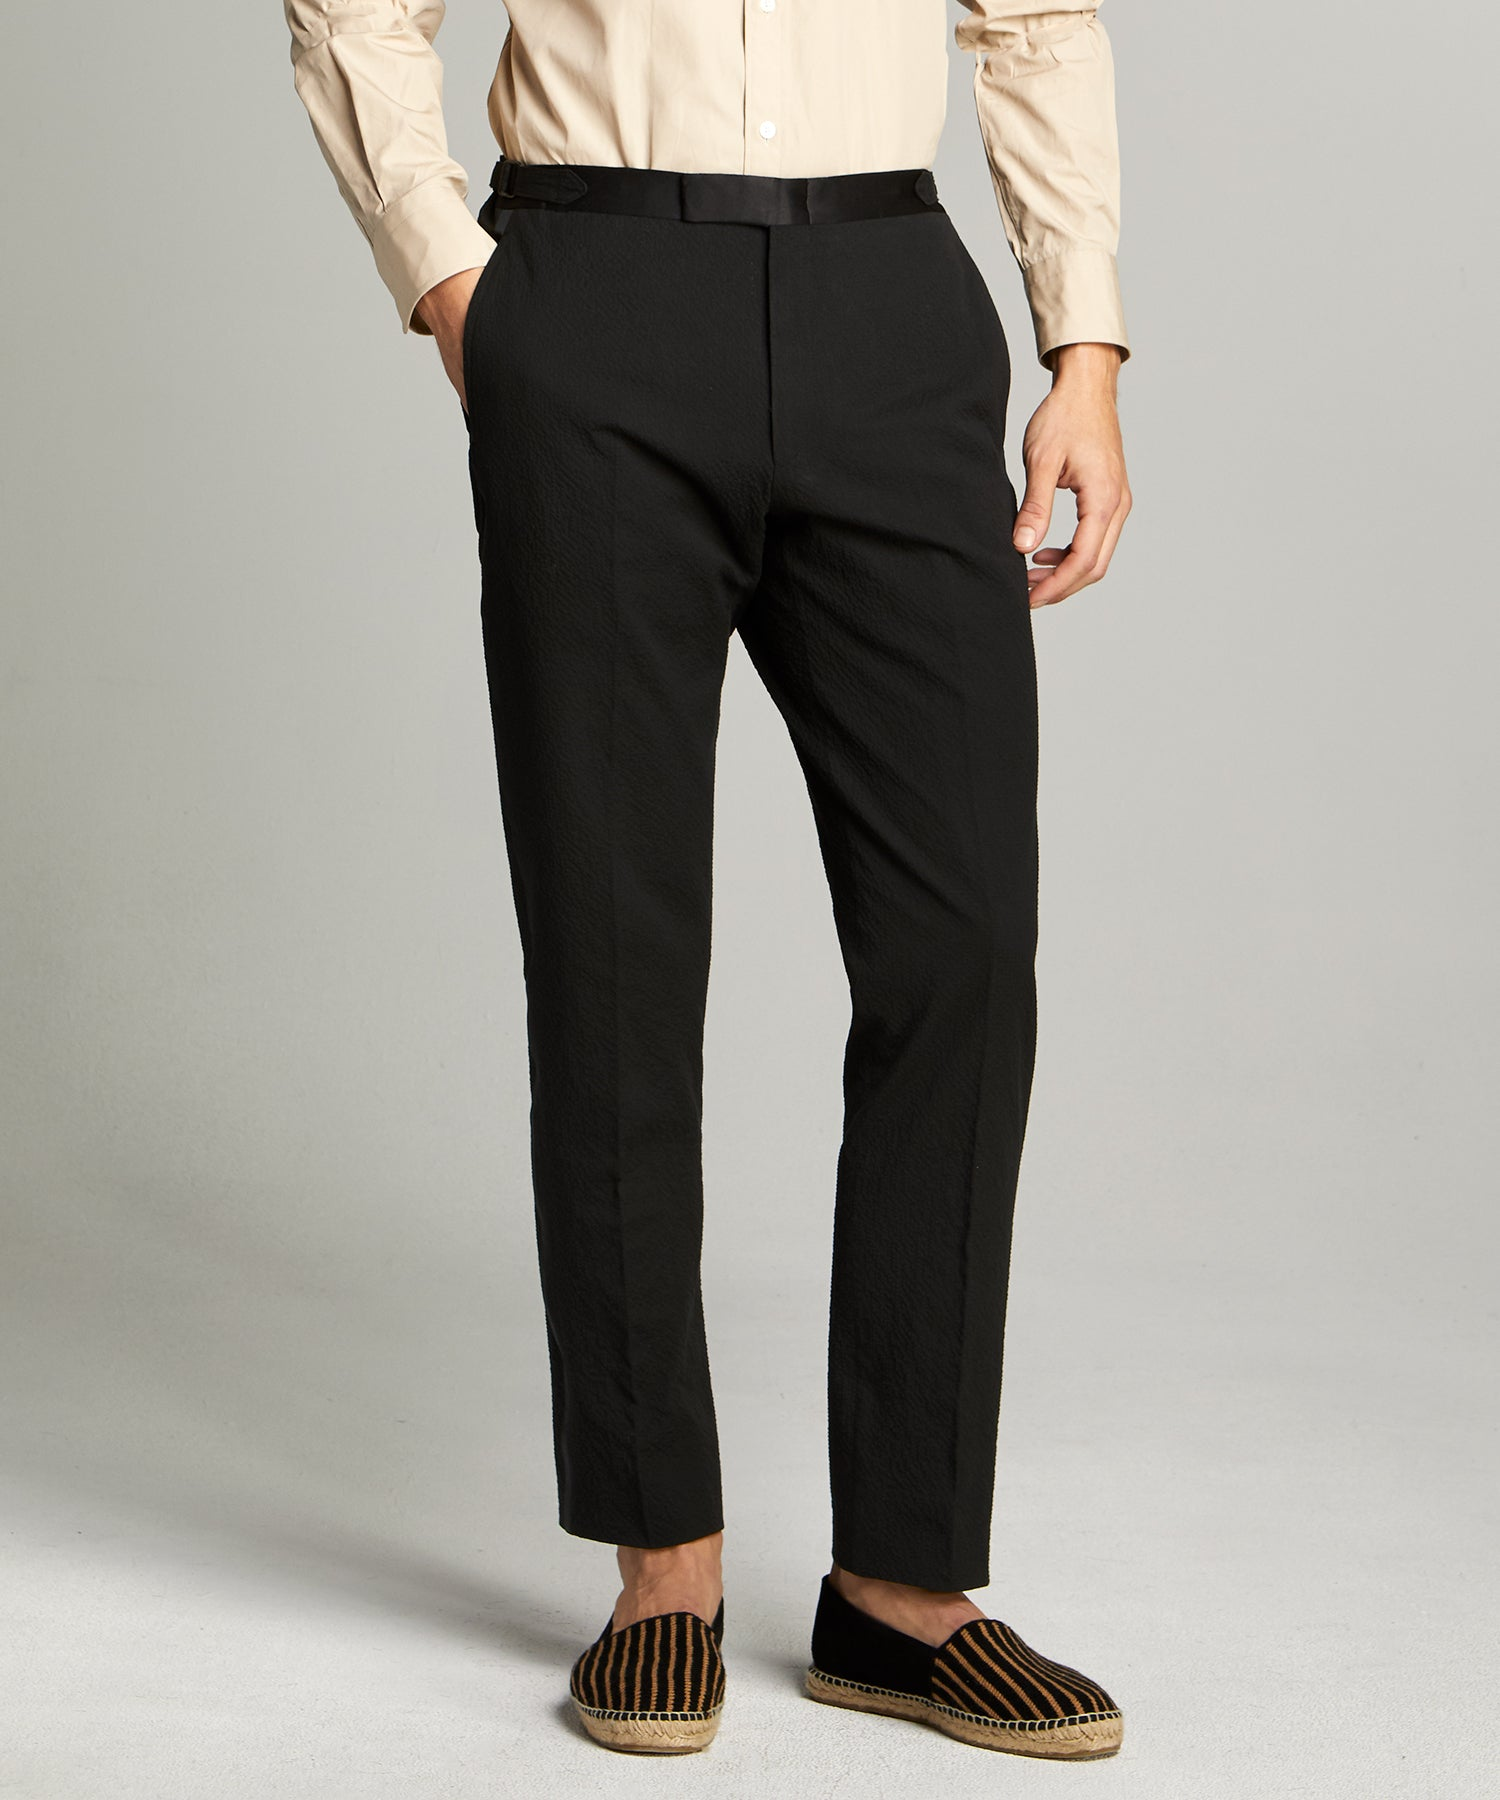 Sutton Tuxedo Pant in Italian Black Seersucker